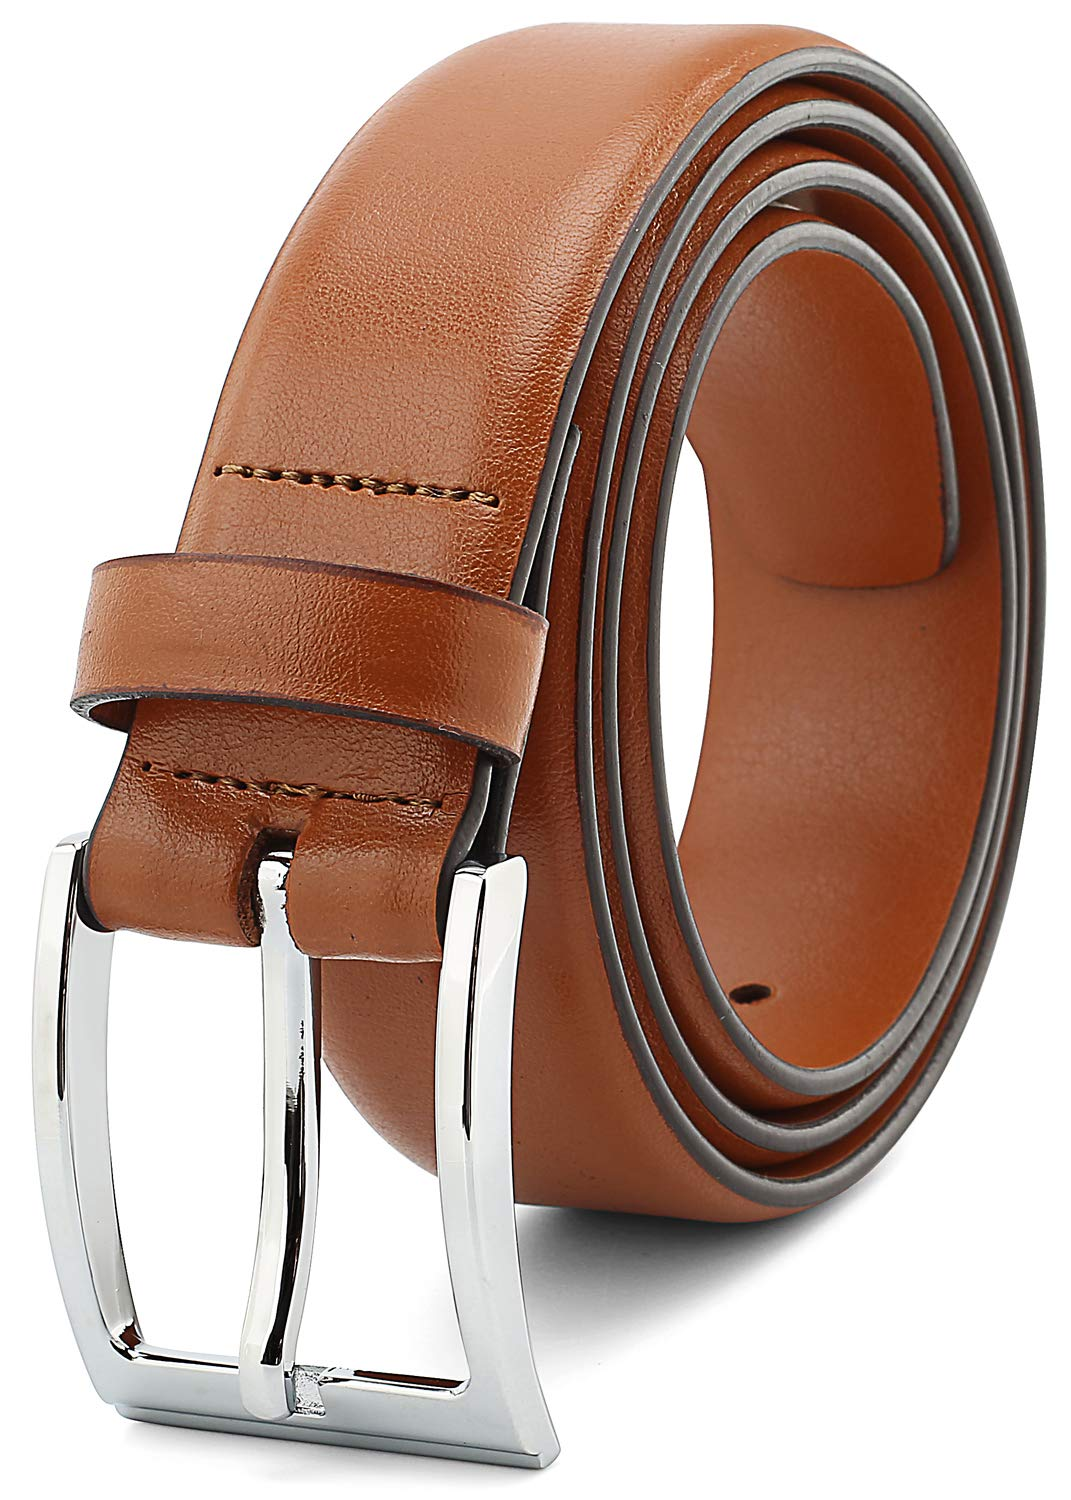 Savile Row Mens Dress Belt Leather 35mm 1.35'' wide Tan Size 38